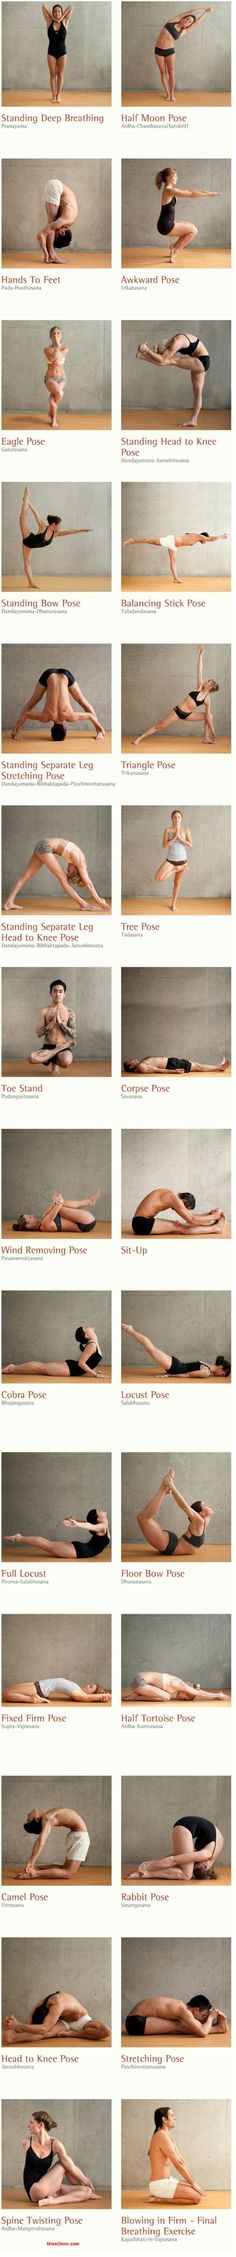 Bikram The best yoga poses filmstrip. Here are 26 different yoga poses and 2 breathing excercises to work out your body inside out. Stimulate your organs, glands and nerves. Increse the oxidization through your whole body. Vinyasa Yoga, Ashtanga Yoga, Bikram Yoga Poses, Hard Yoga Poses, Kundalini Yoga, Fitness Del Yoga, Sport Fitness, Health Fitness, Fitness Shirts